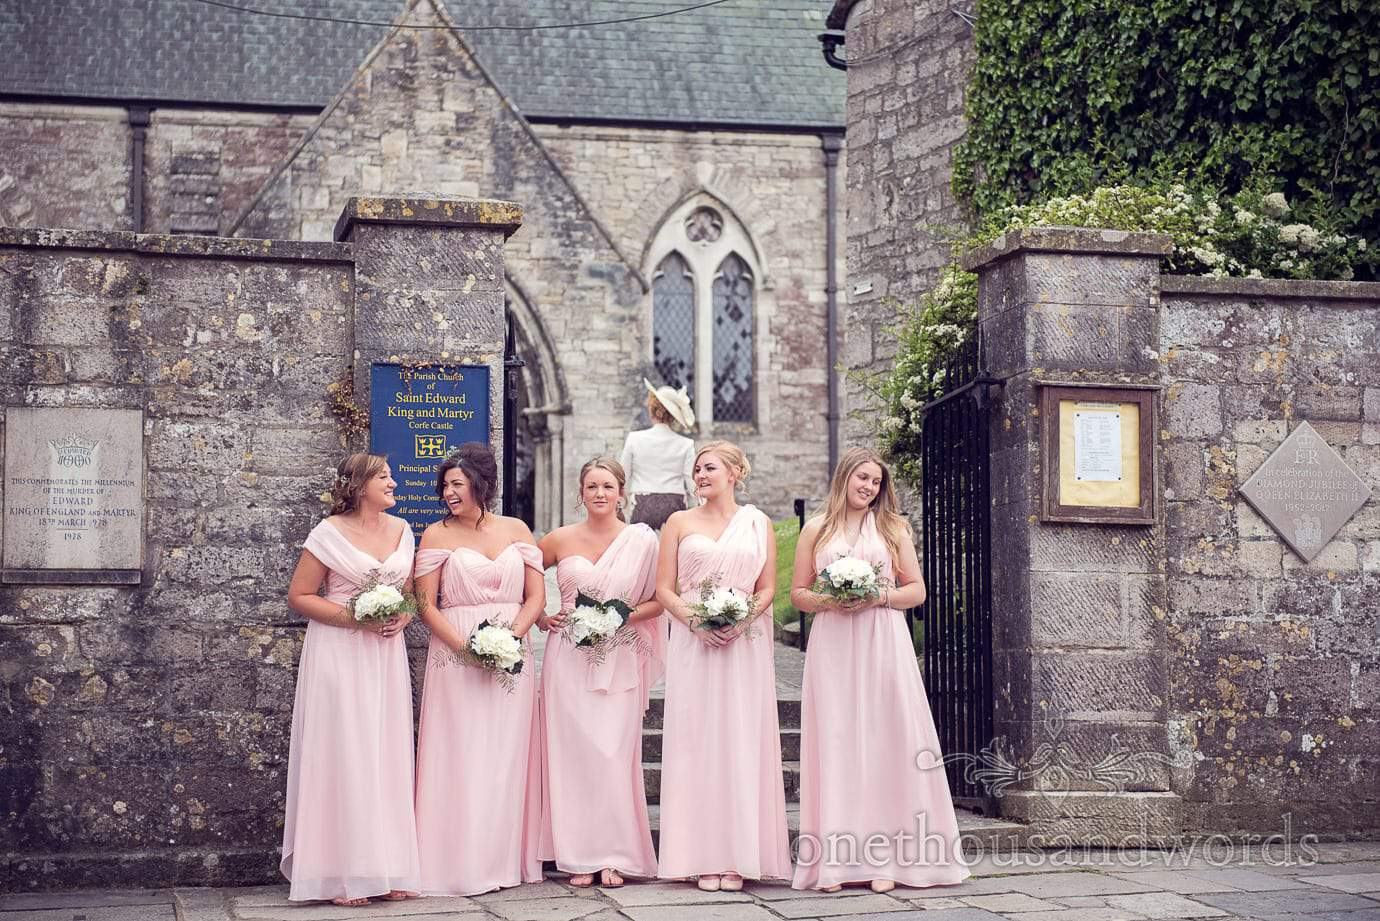 Bridesmaids in pink greco roman bridesmaids dresses outside Corfe Castle church